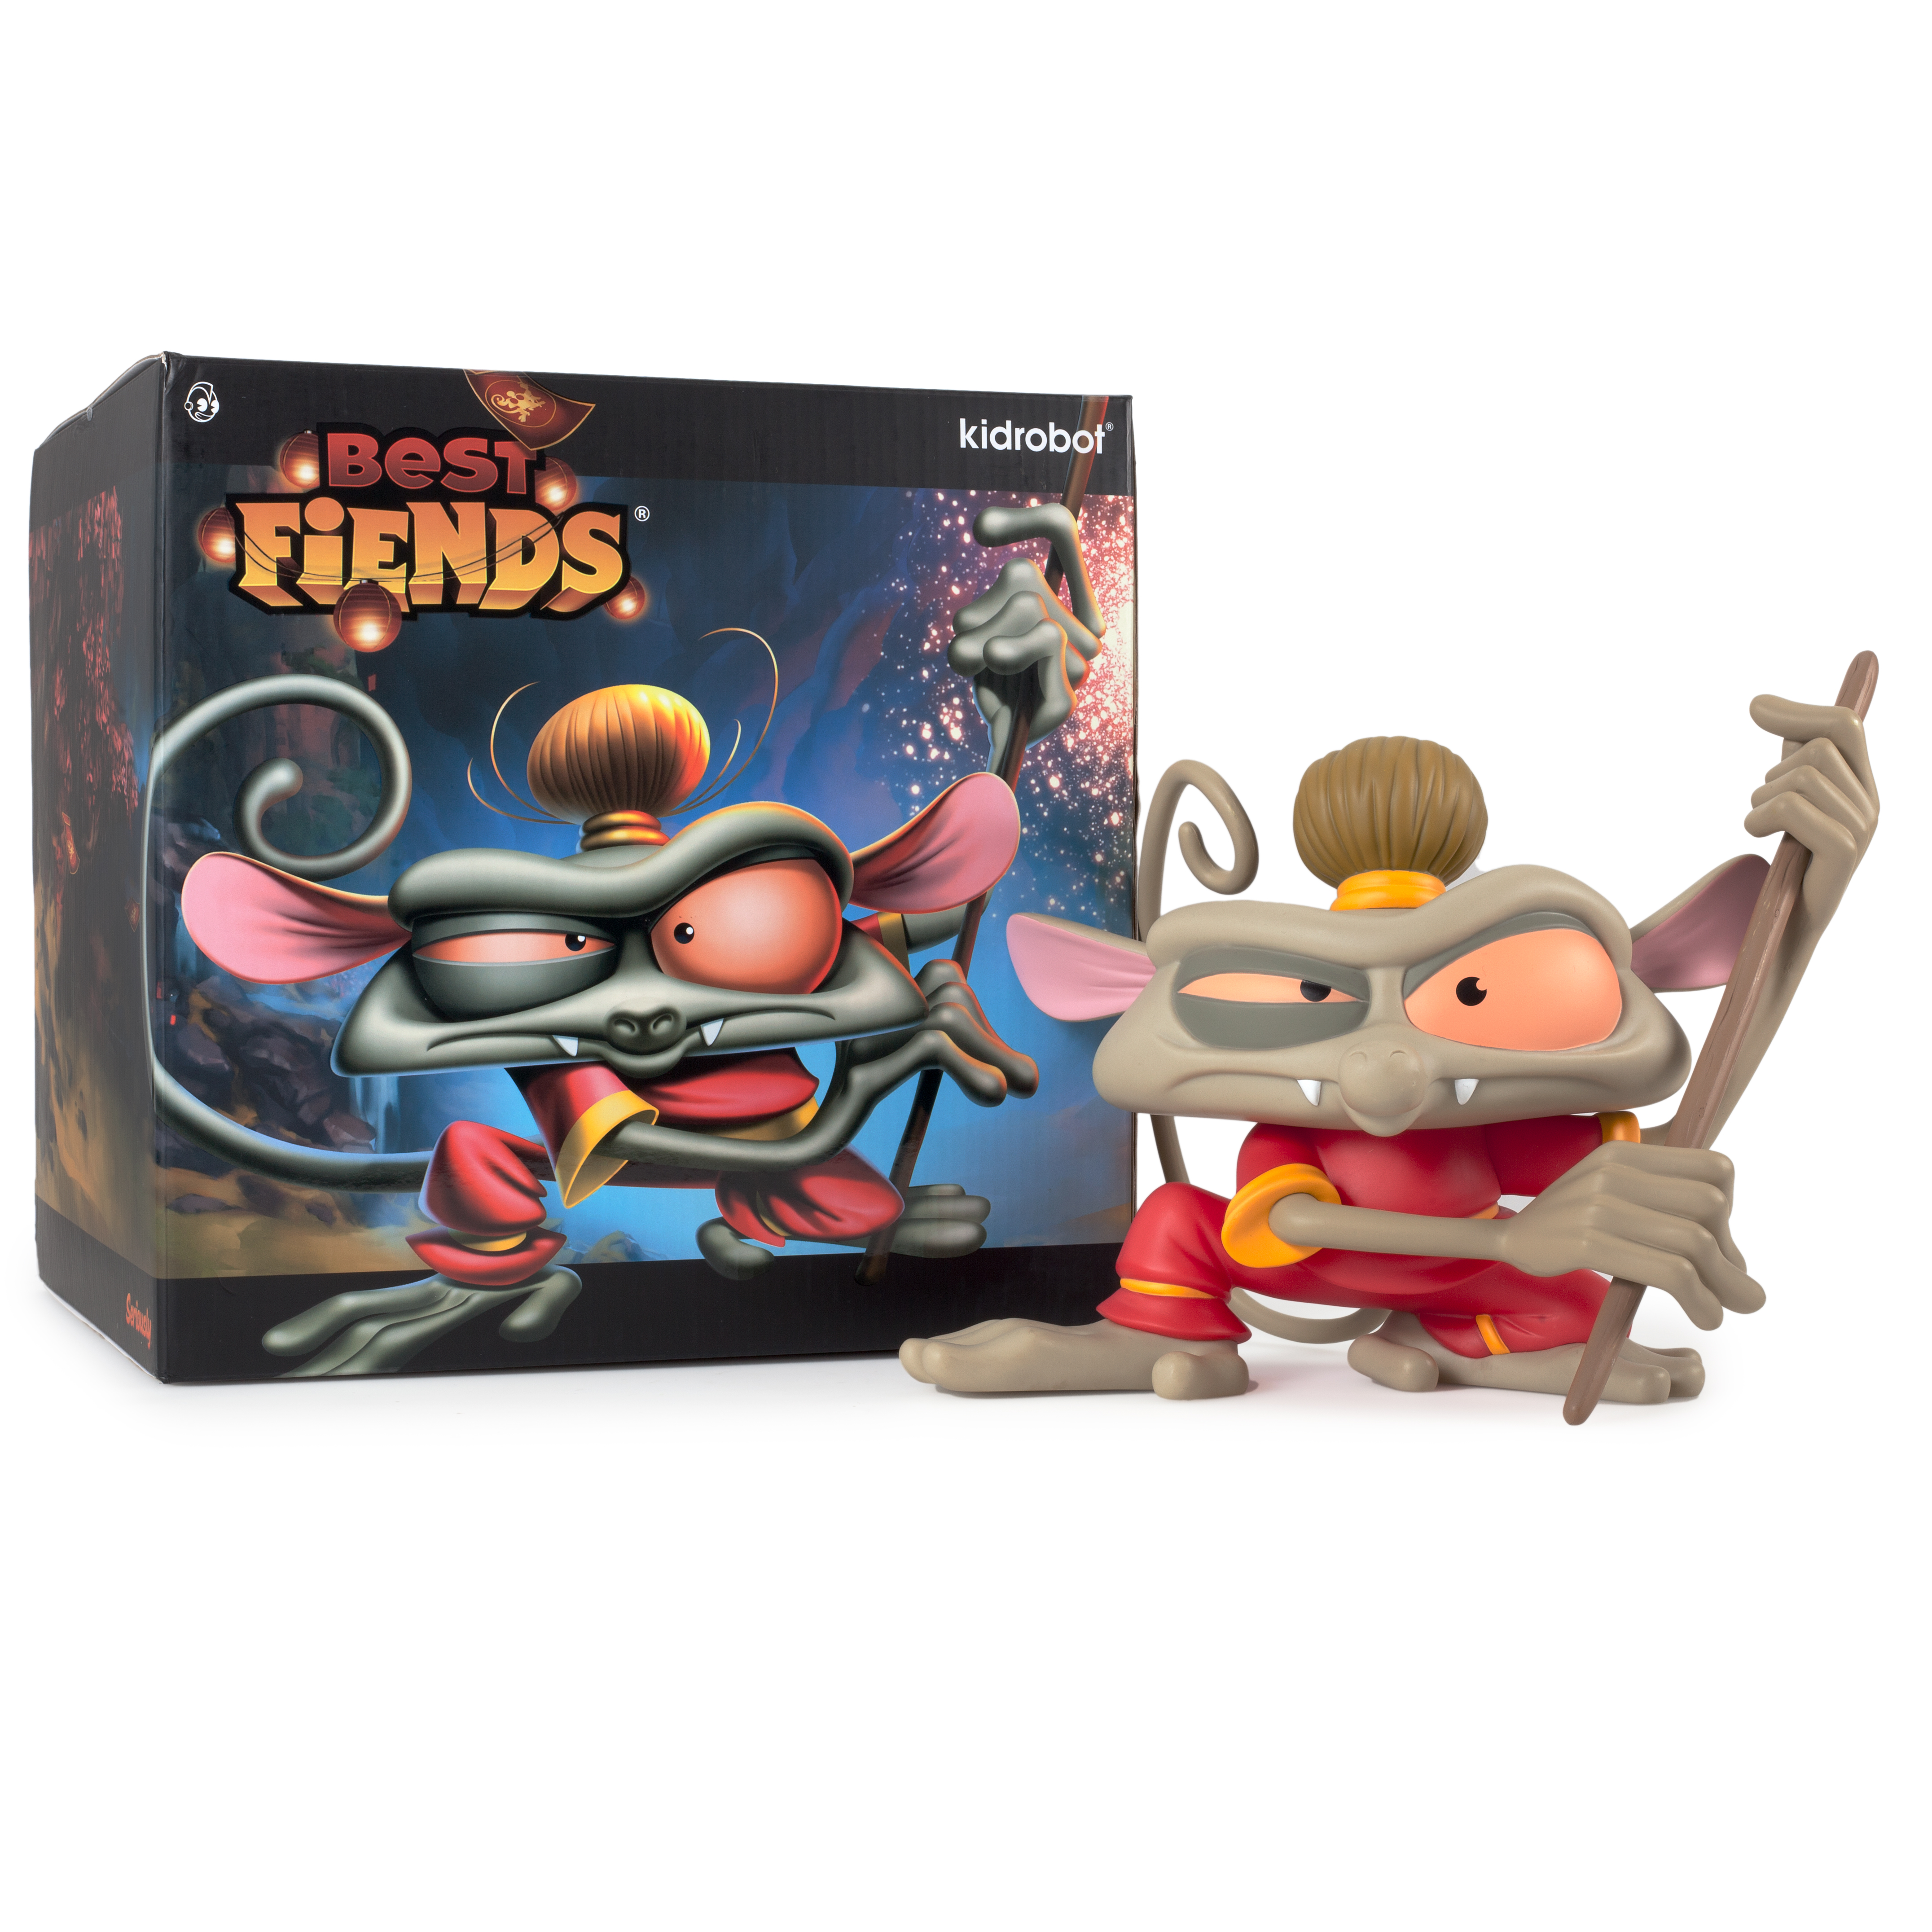 Kidrobot And Seriously To Release New Best Fiends Figure